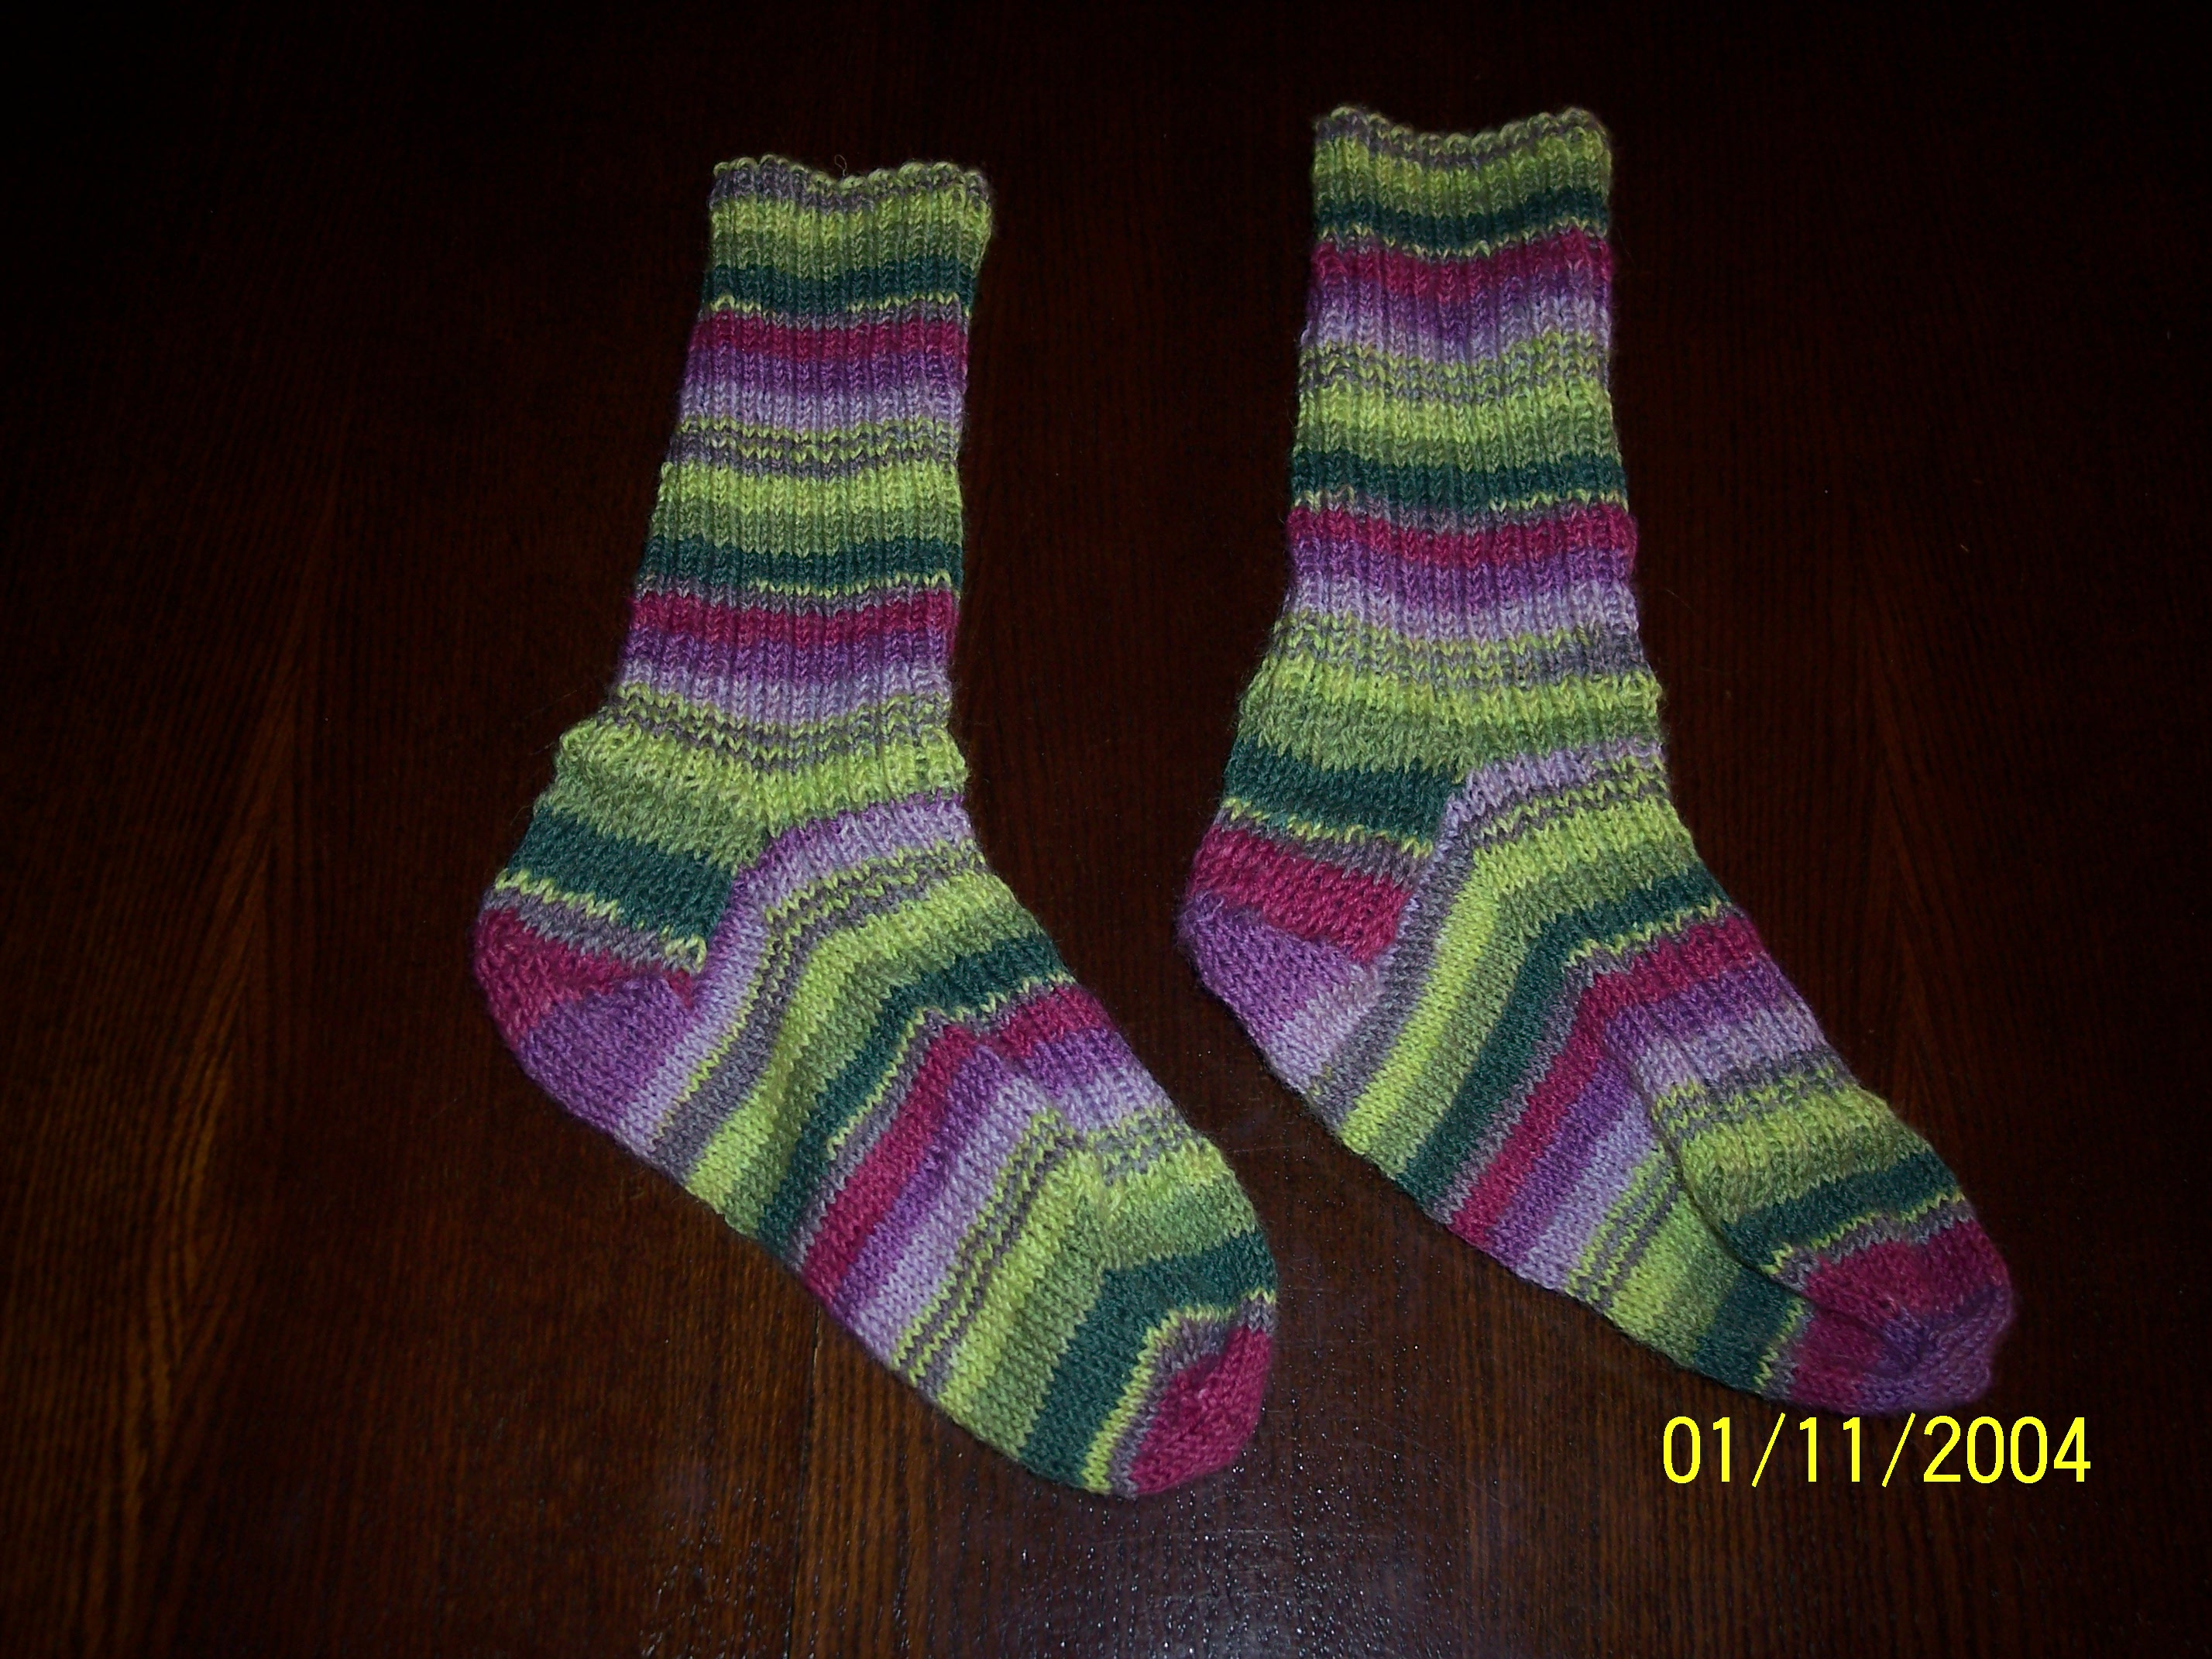 Finished socks--not quite even, but pretty nonetheless!